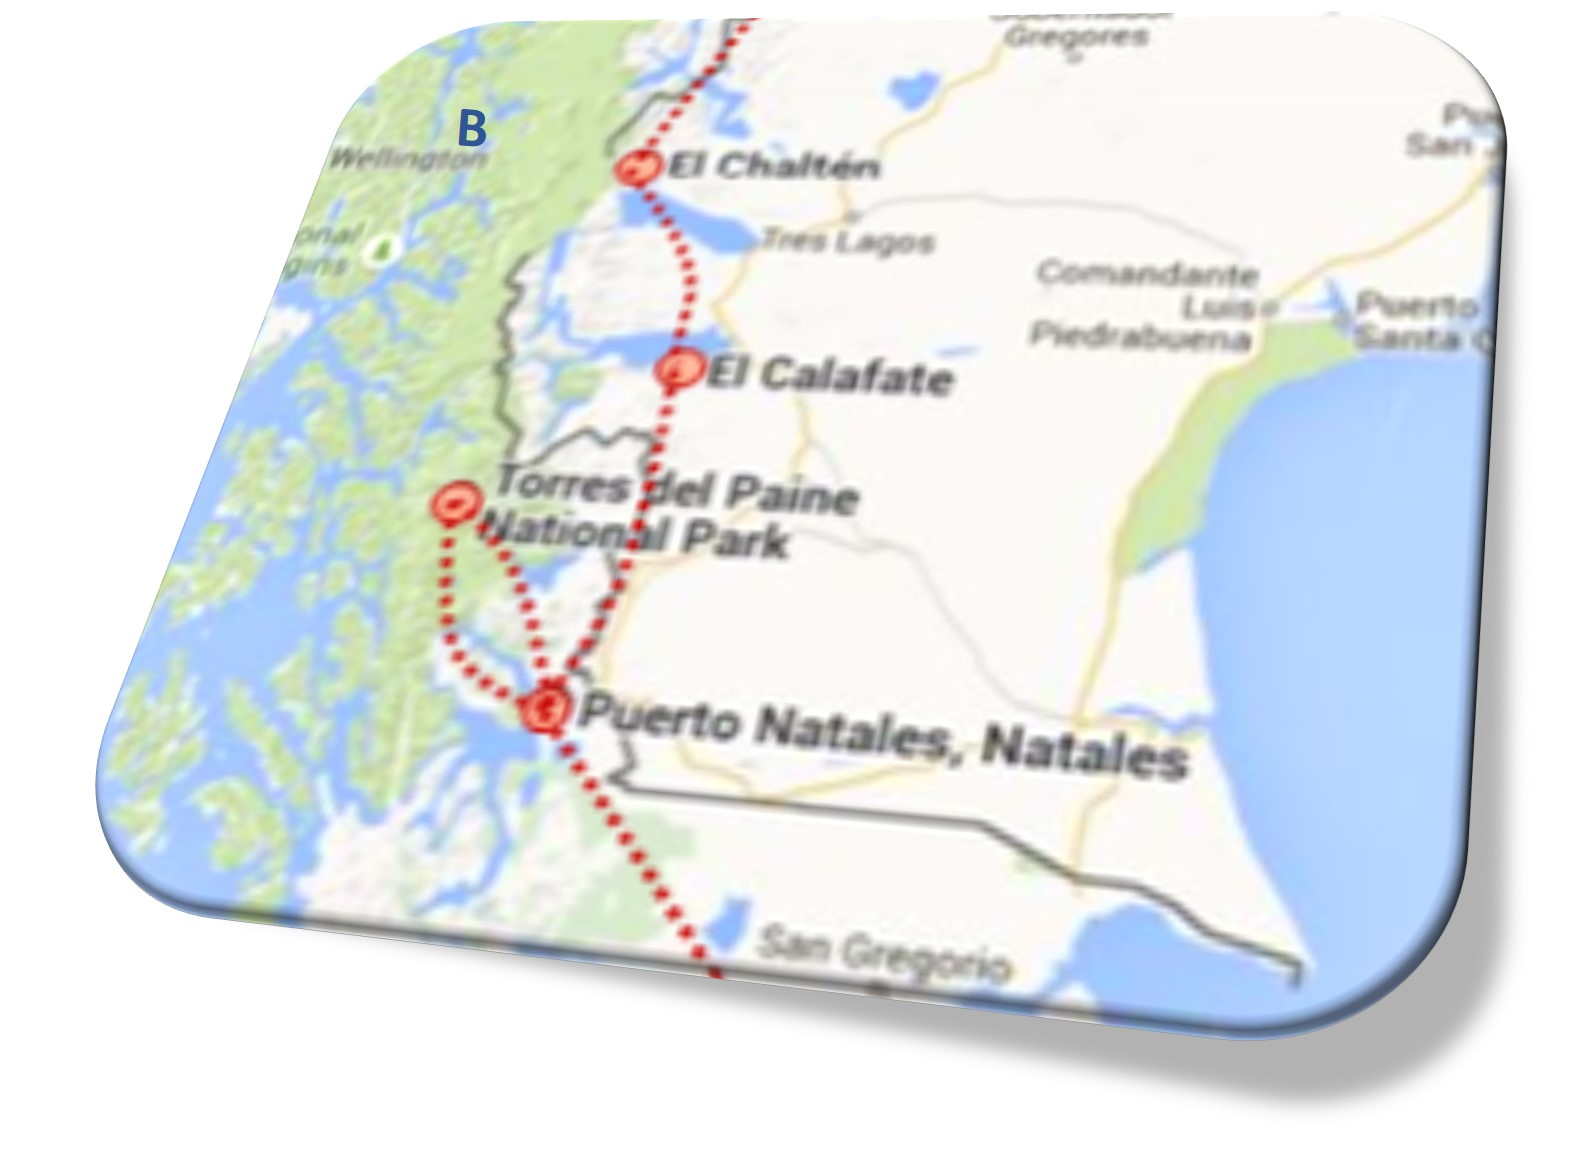 Part B Patagonia Route (see map above)